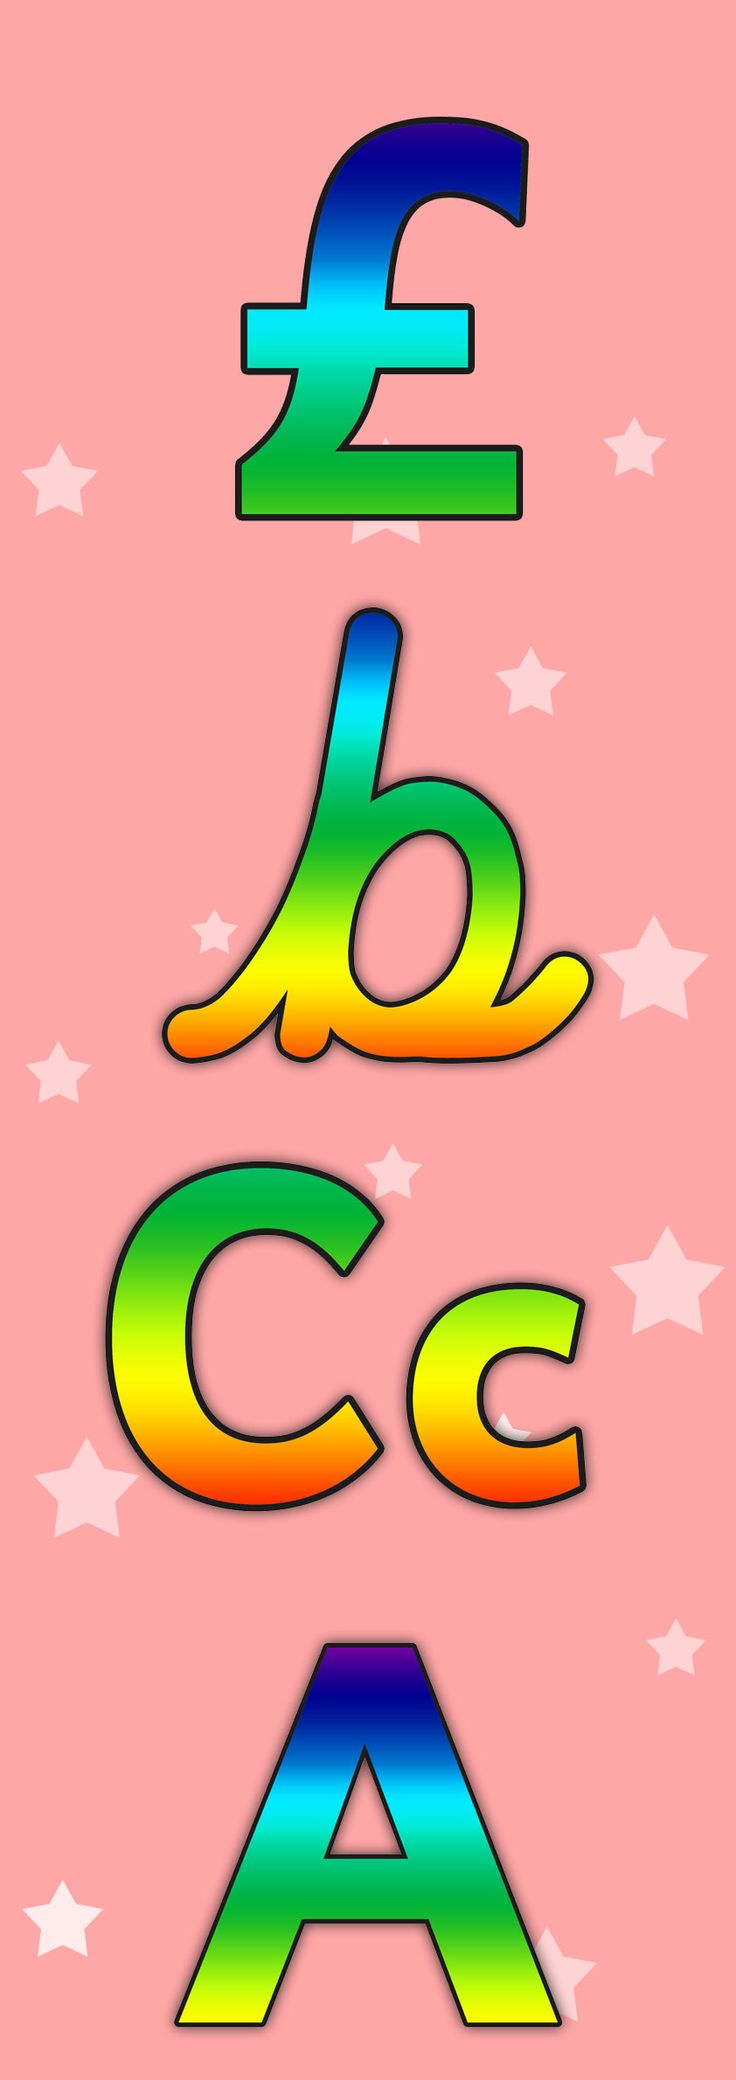 Twinkl Resources >> Rainbow Alphabet Display Lettering >> Printable resources for EYFS, KS1 and SEN classroom displays and teaching aids! Display, Classroom, Lettering, Rainbow